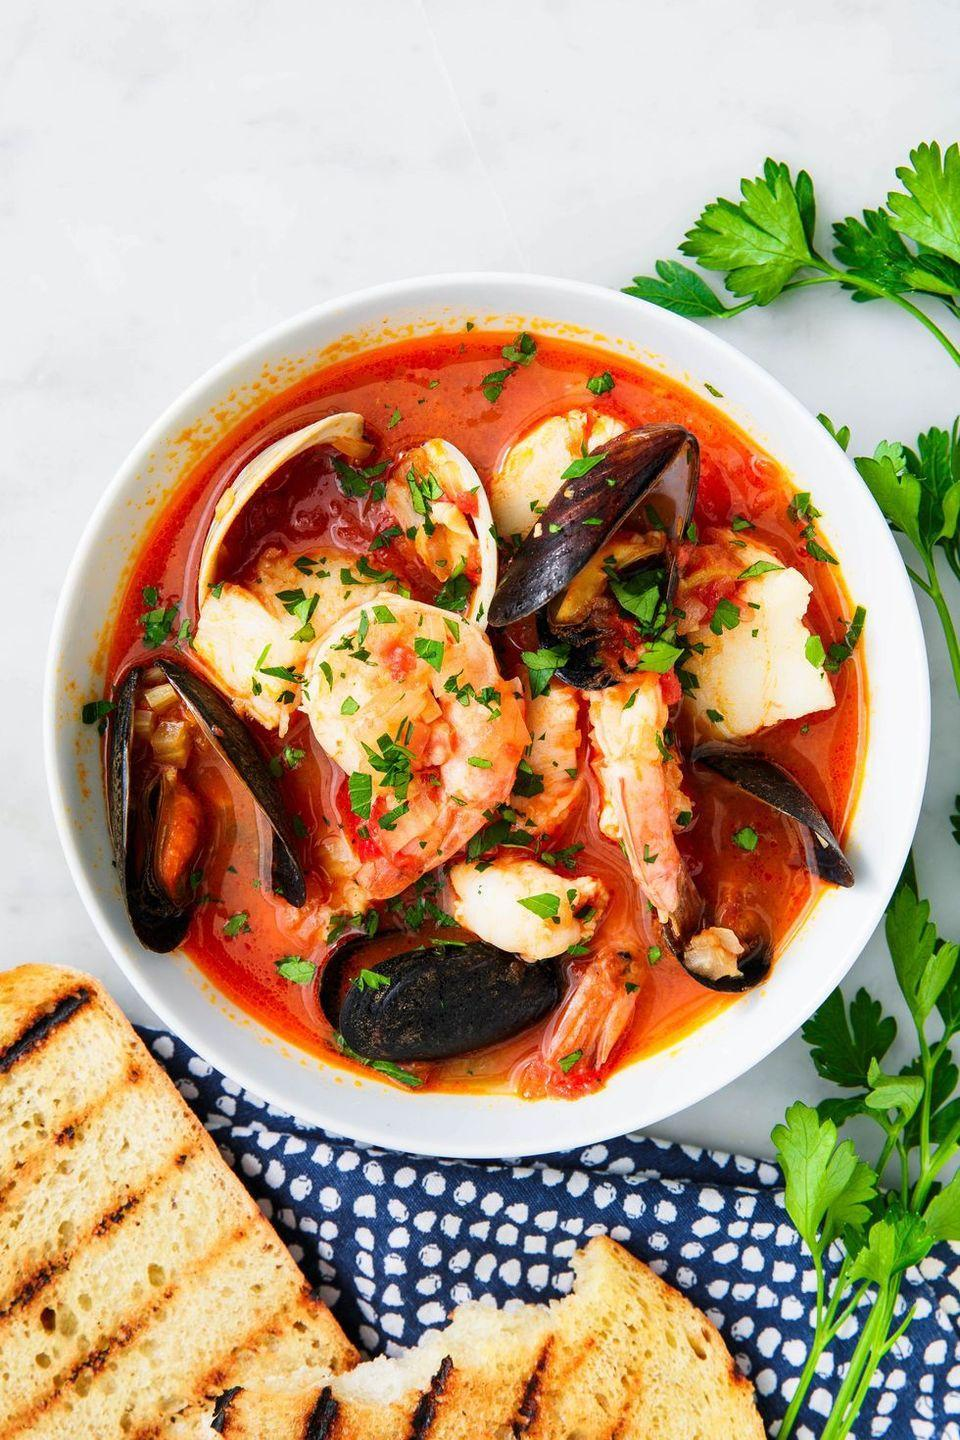 """<p>This seafood soup originated in San Francisco and it tastes like the freshest flavors of the Bay. Fill it with all your favorite seafoods to customize it to your taste. </p><p><strong><em>Get the recipe at <a href=""""https://www.delish.com/cooking/recipe-ideas/a31098212/cioppino-recipe/"""" rel=""""nofollow noopener"""" target=""""_blank"""" data-ylk=""""slk:Delish"""" class=""""link rapid-noclick-resp"""">Delish</a>. </em></strong></p>"""